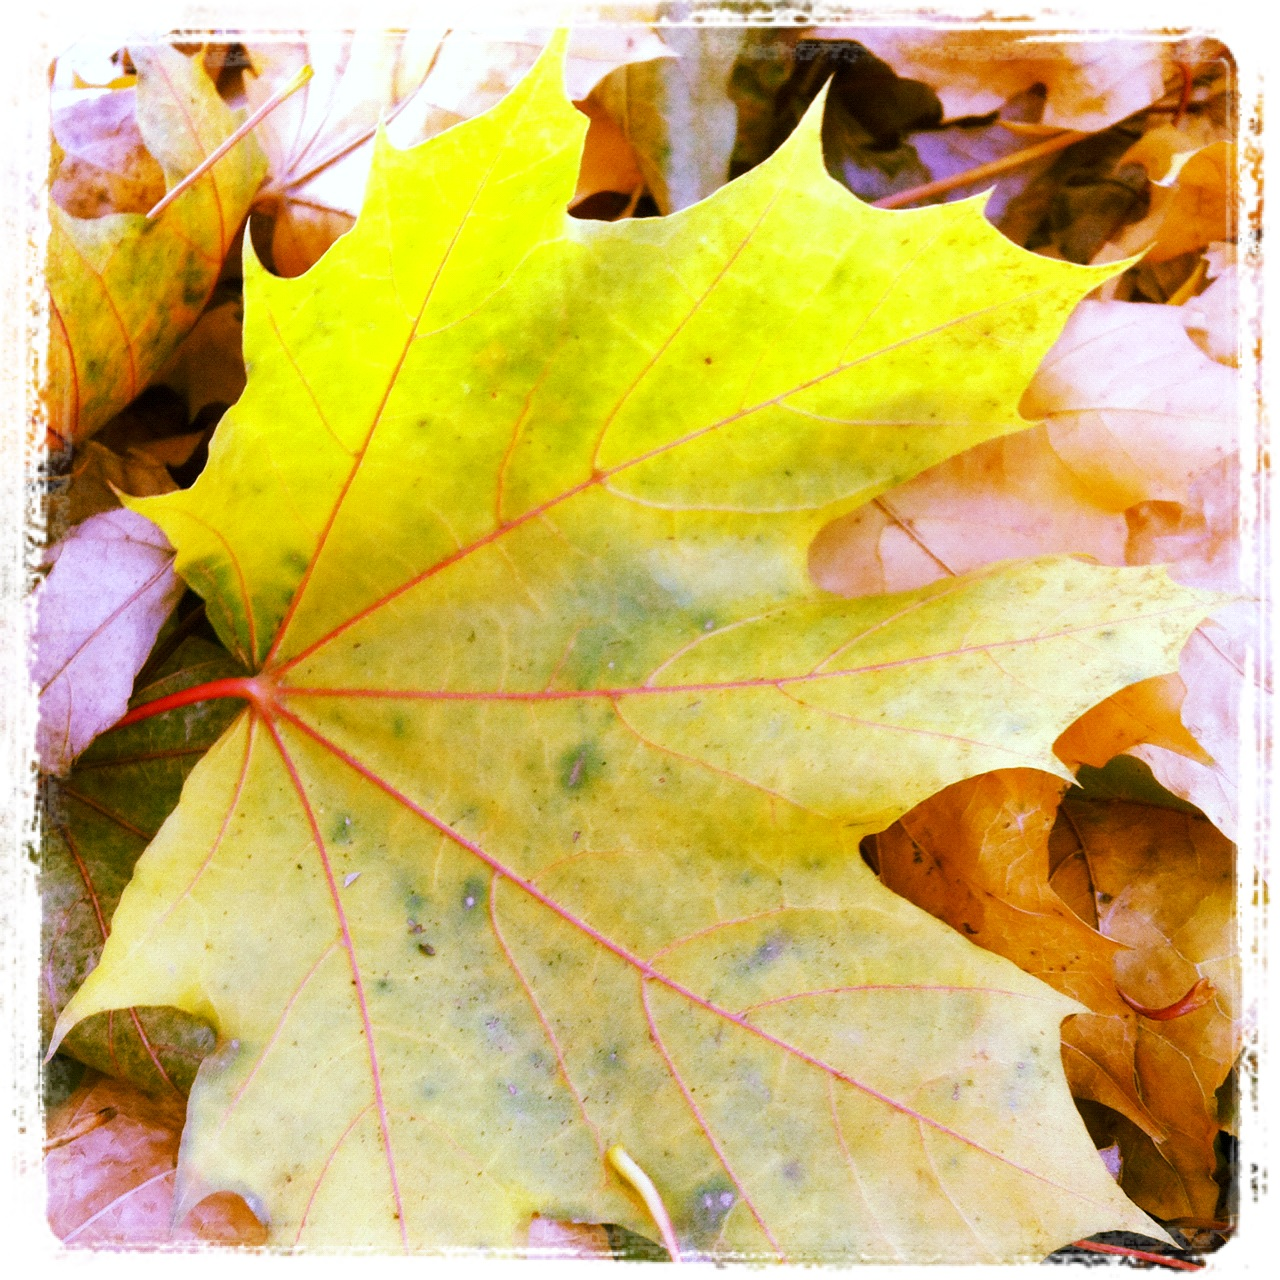 Glowing Yellow Leaf Detail by ycrad64